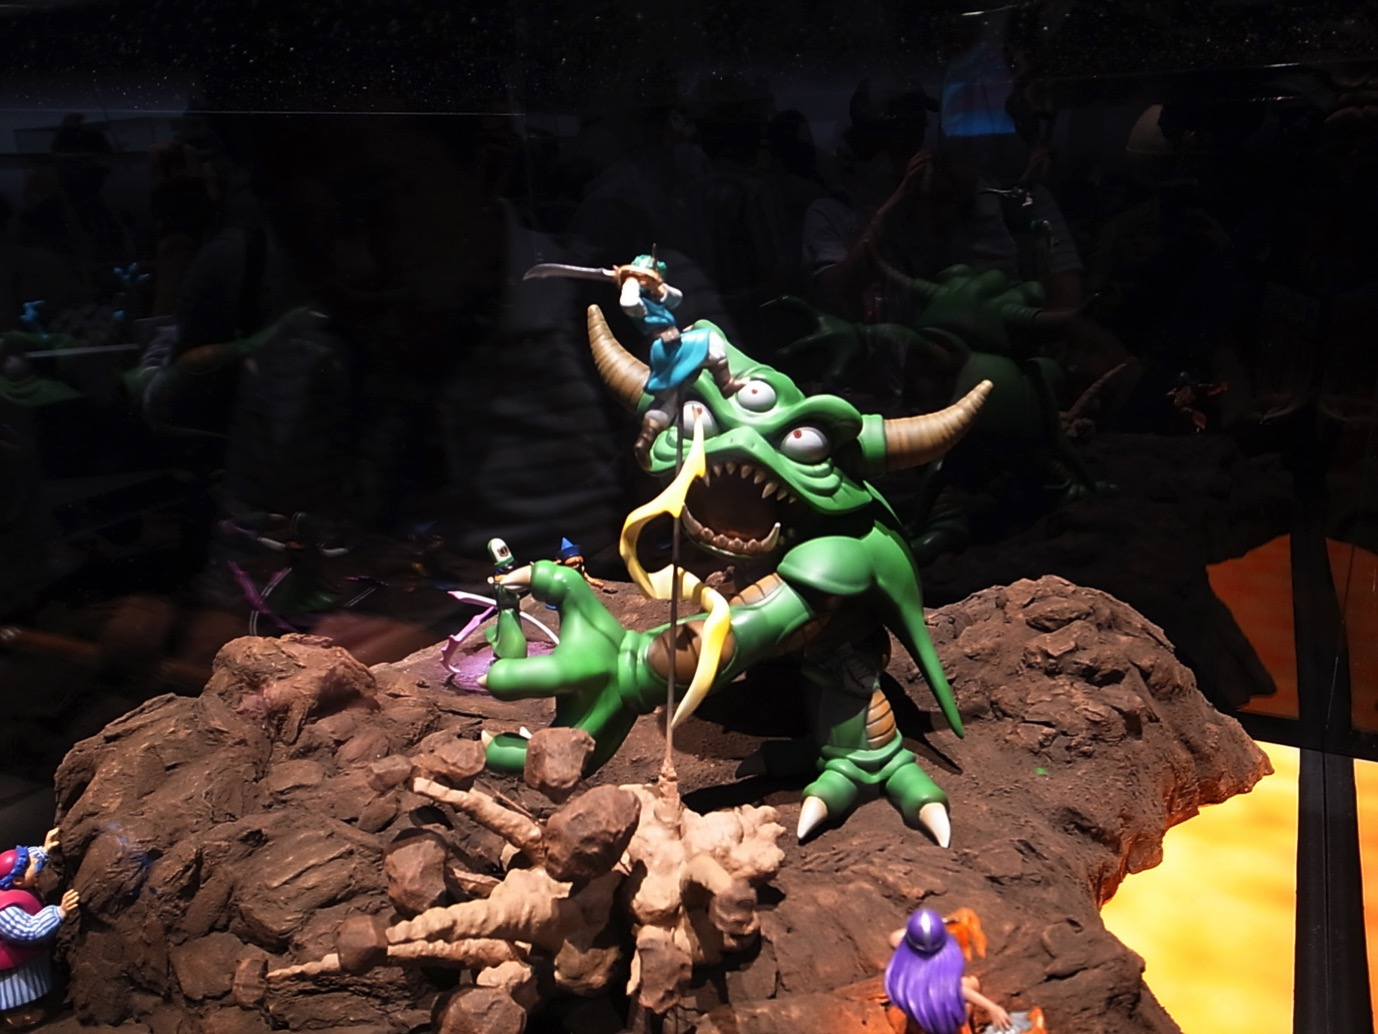 Dragon quest museum 21